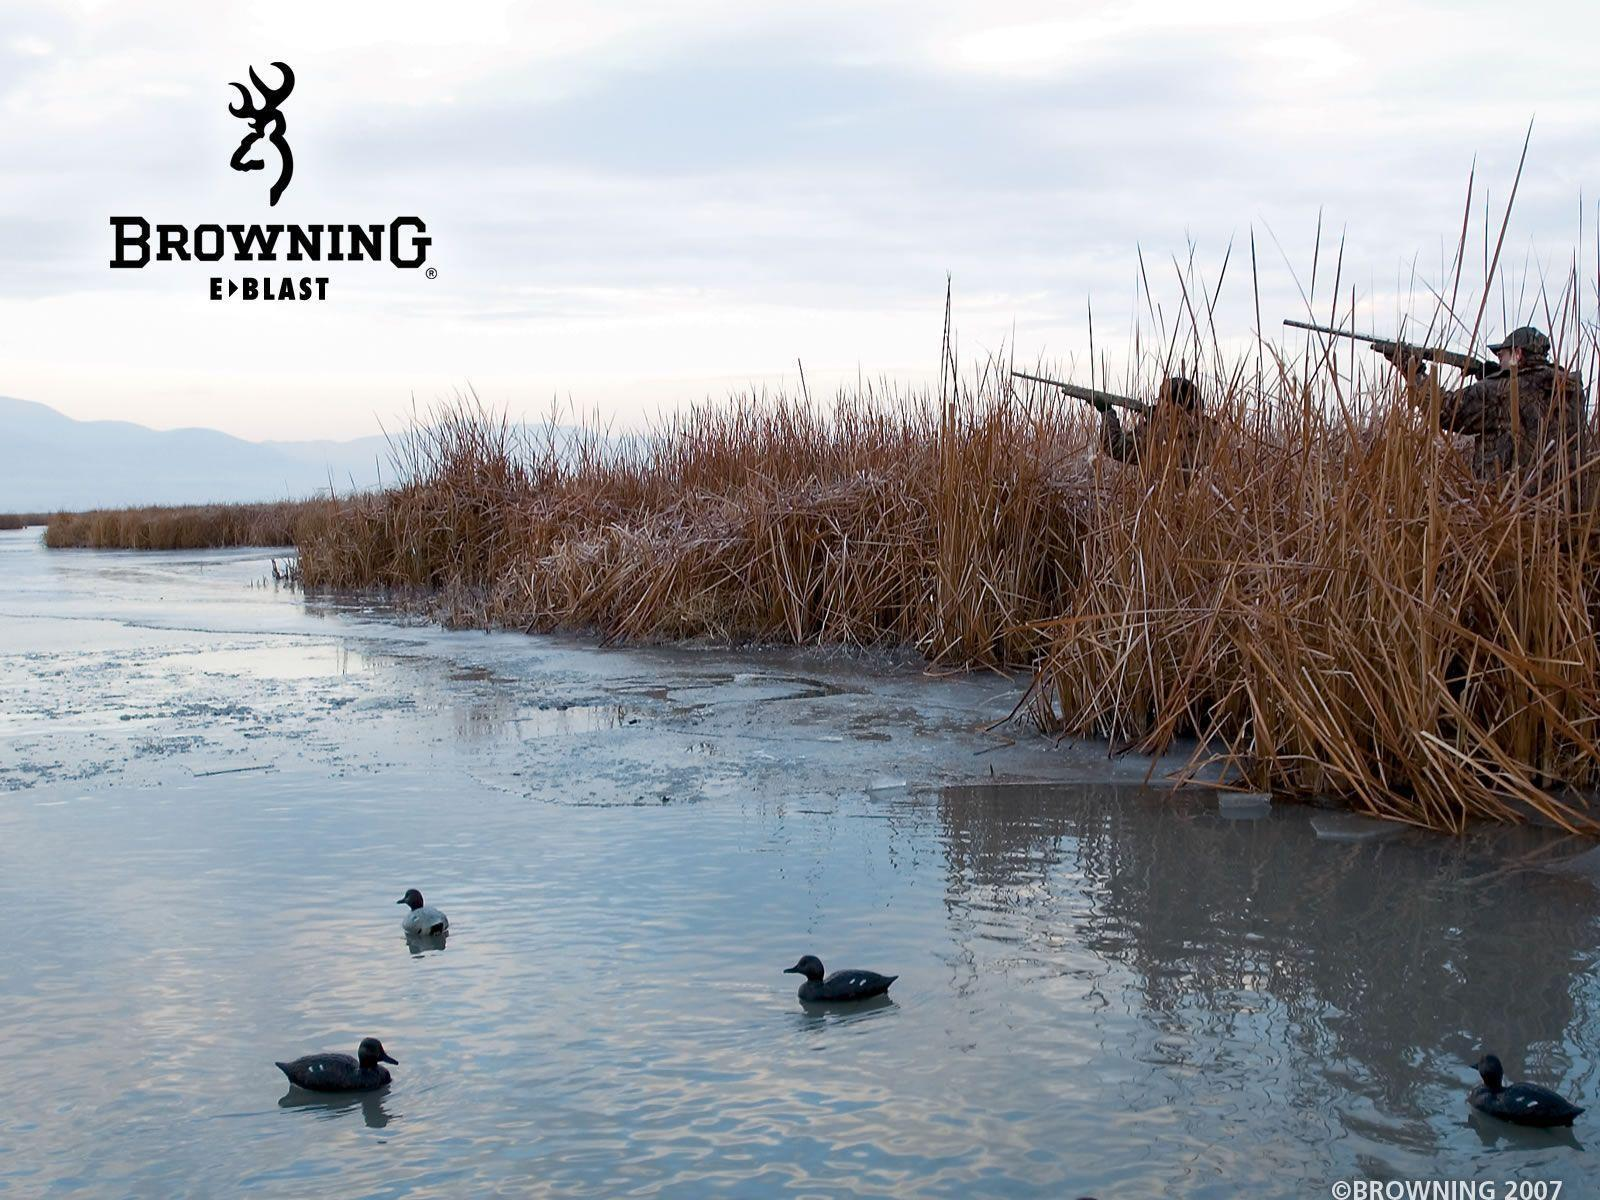 Browning Logo Wallpapers Hd Image 14 Full